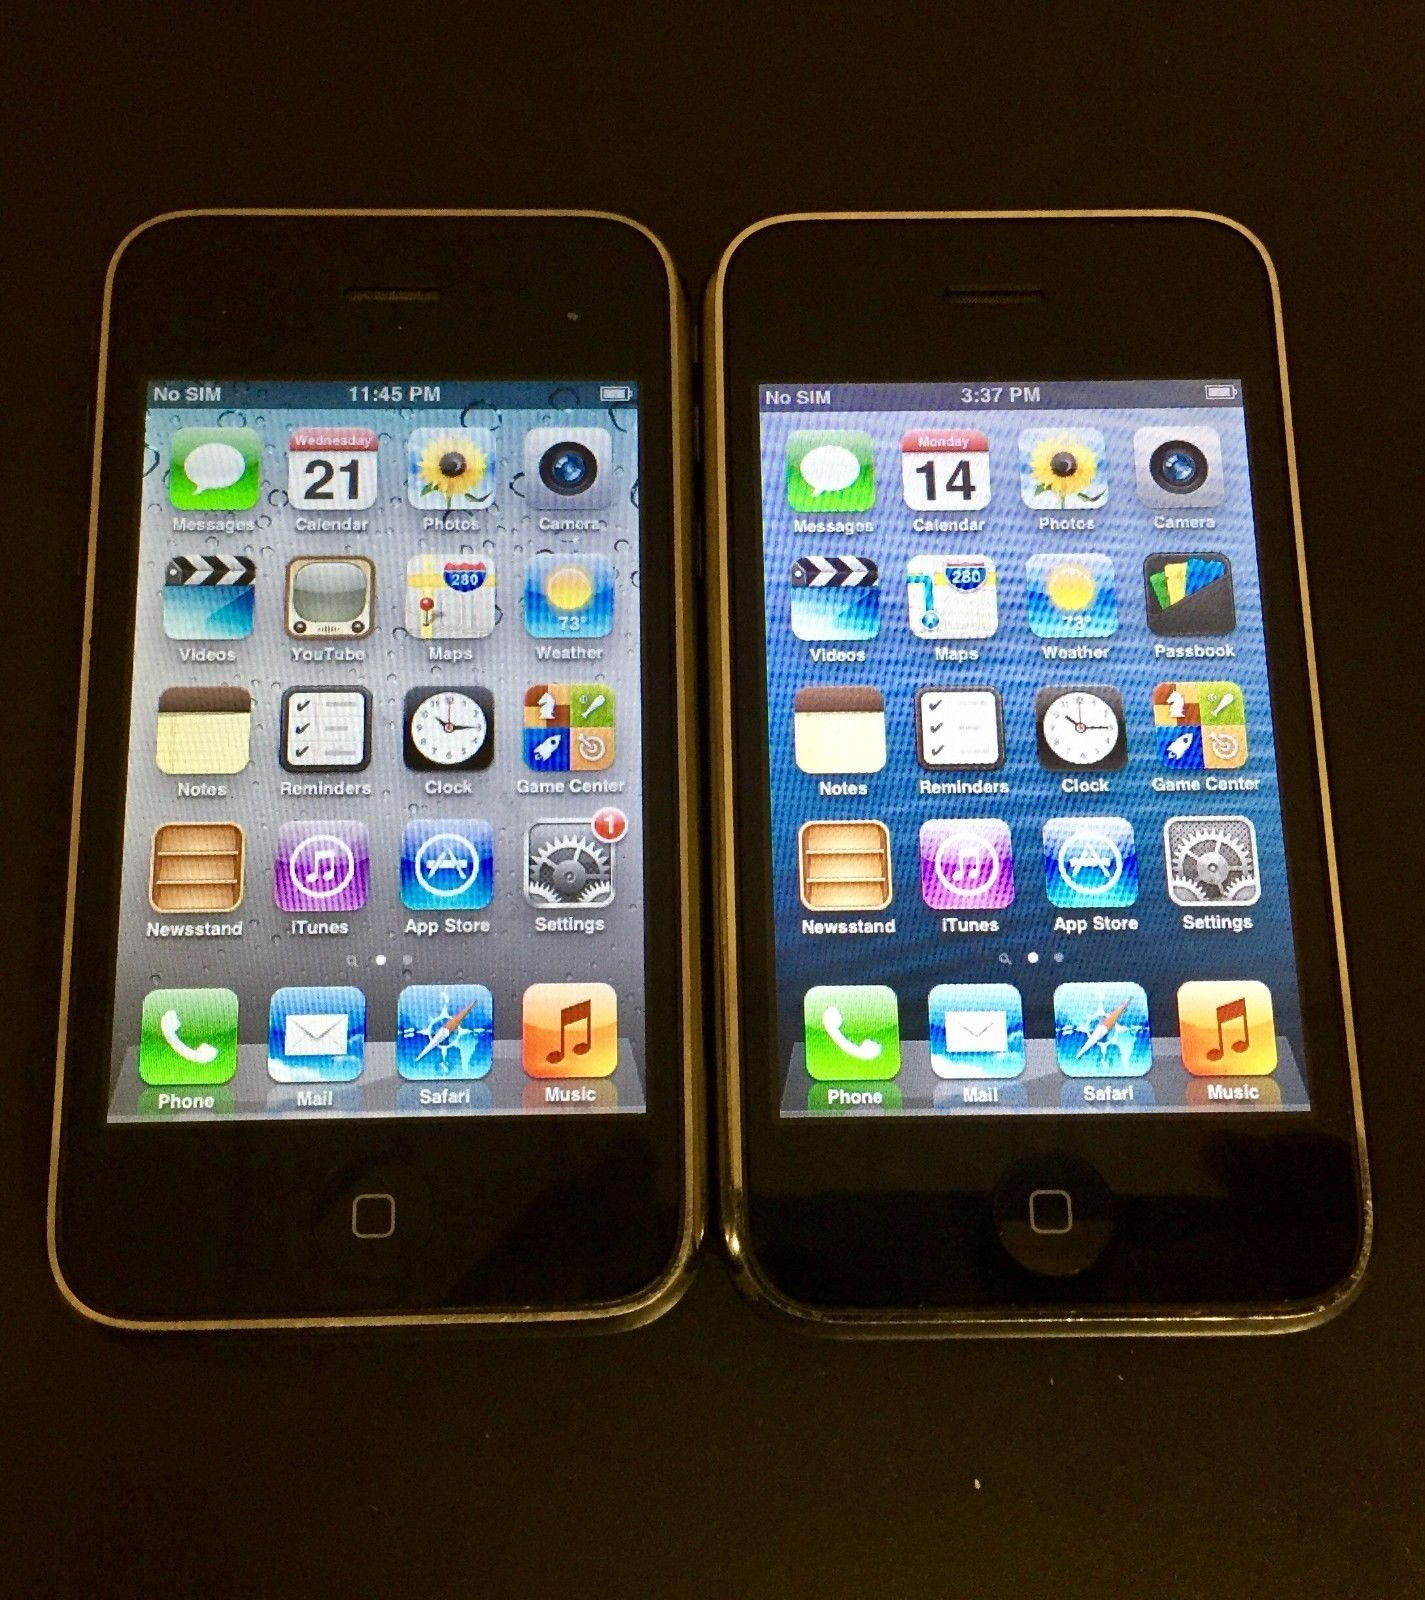 Lot of 2 USED Apple iPhone 3GS 16GB & 8GB - Black (AT&T) Smartphone